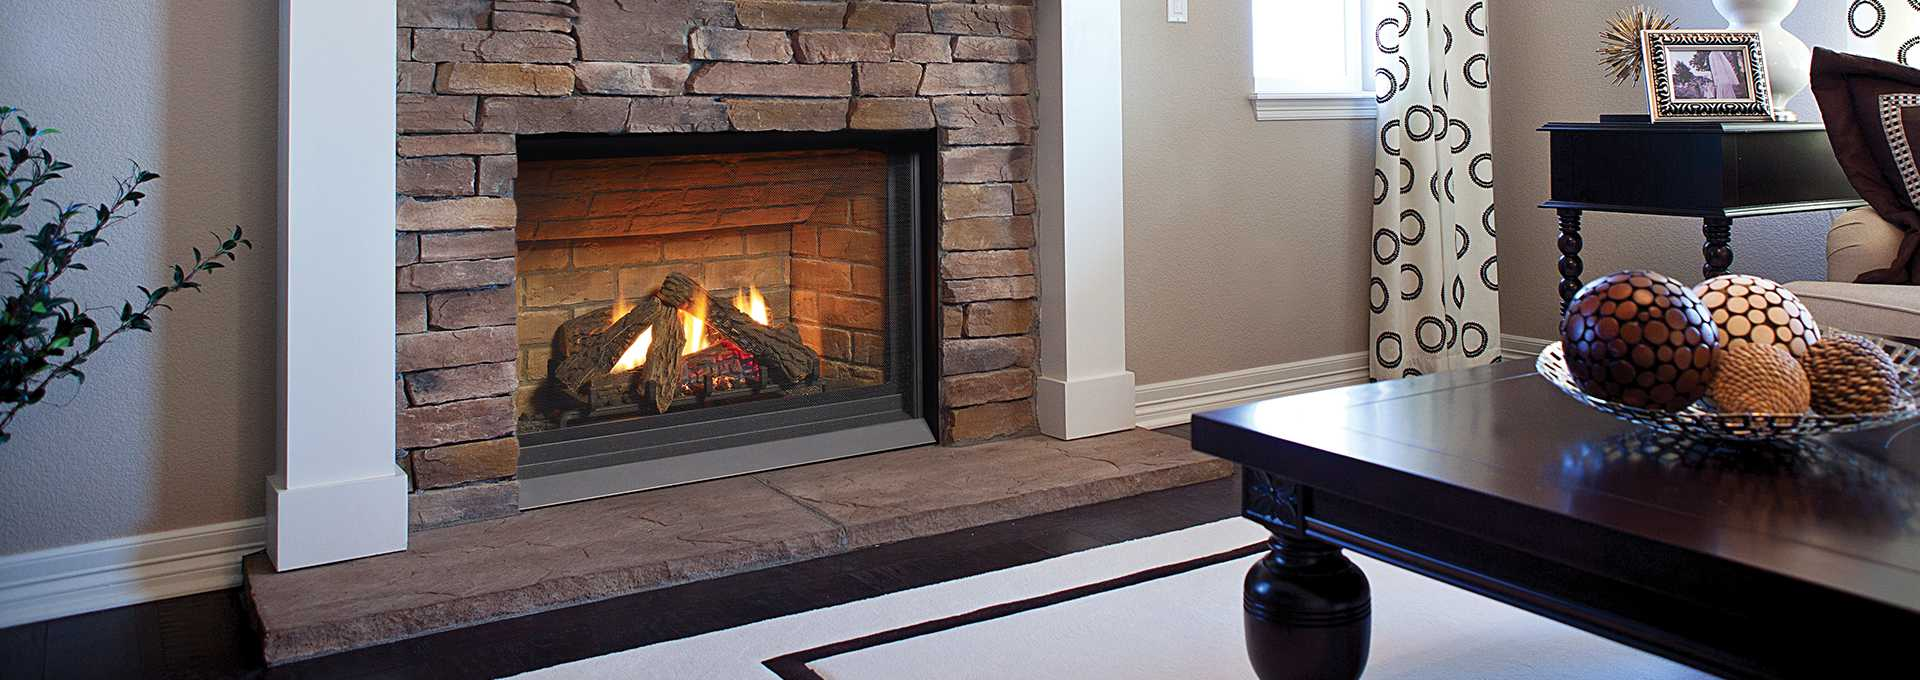 panorama p33ce gas fireplace gas fireplaces regency fireplace